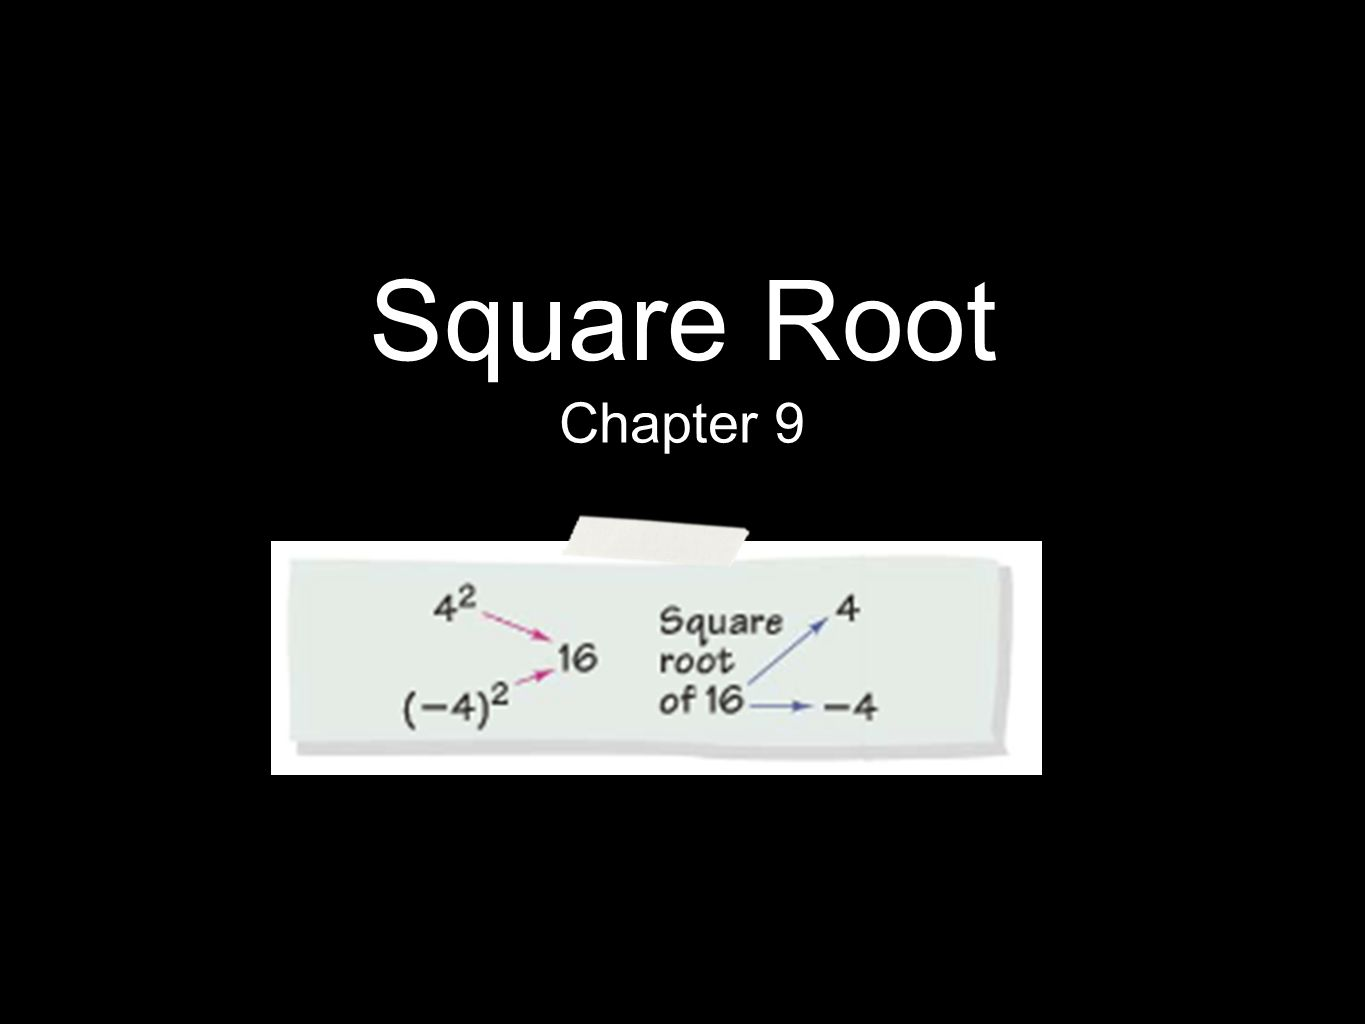 Square Root Chapter 9